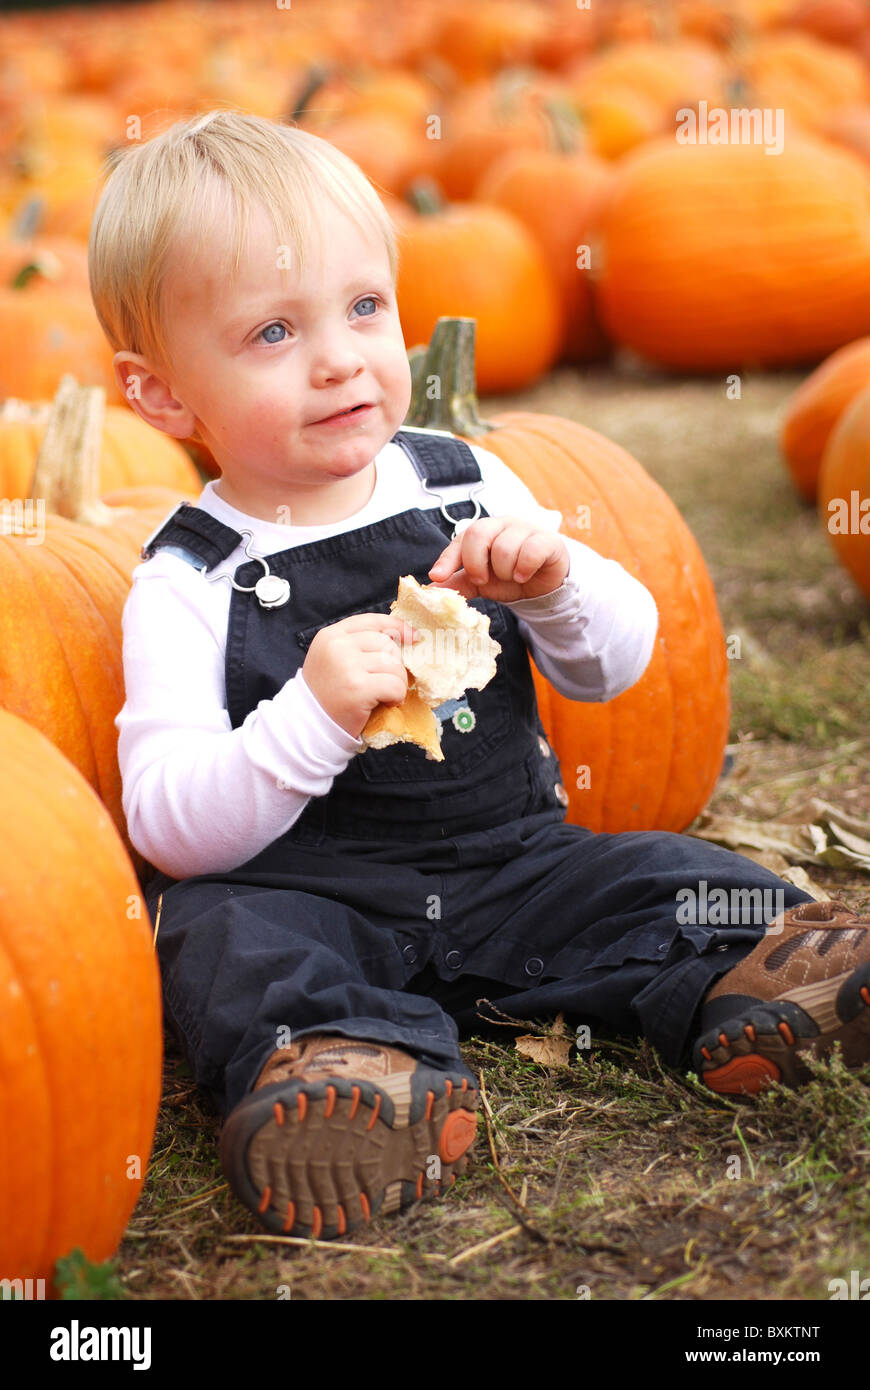 Young boy at a pumpkin farm Stock Photo